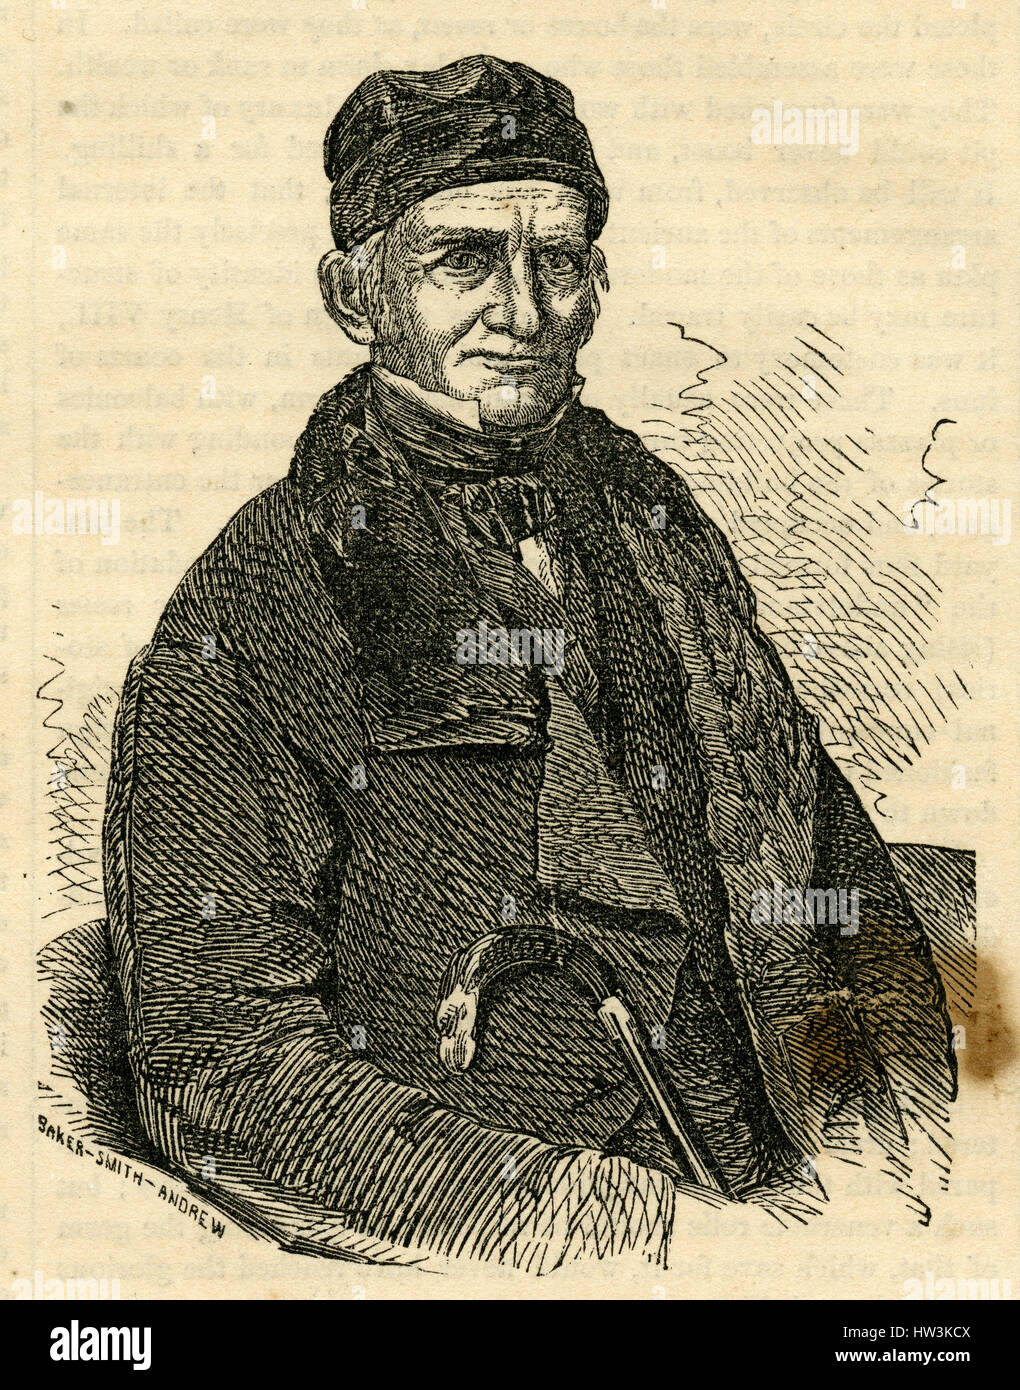 Antique 1854 engraving, 'The Late Amos Lawrence.' Amos Lawrence (1786-1852) was an American merchant and - Stock Image